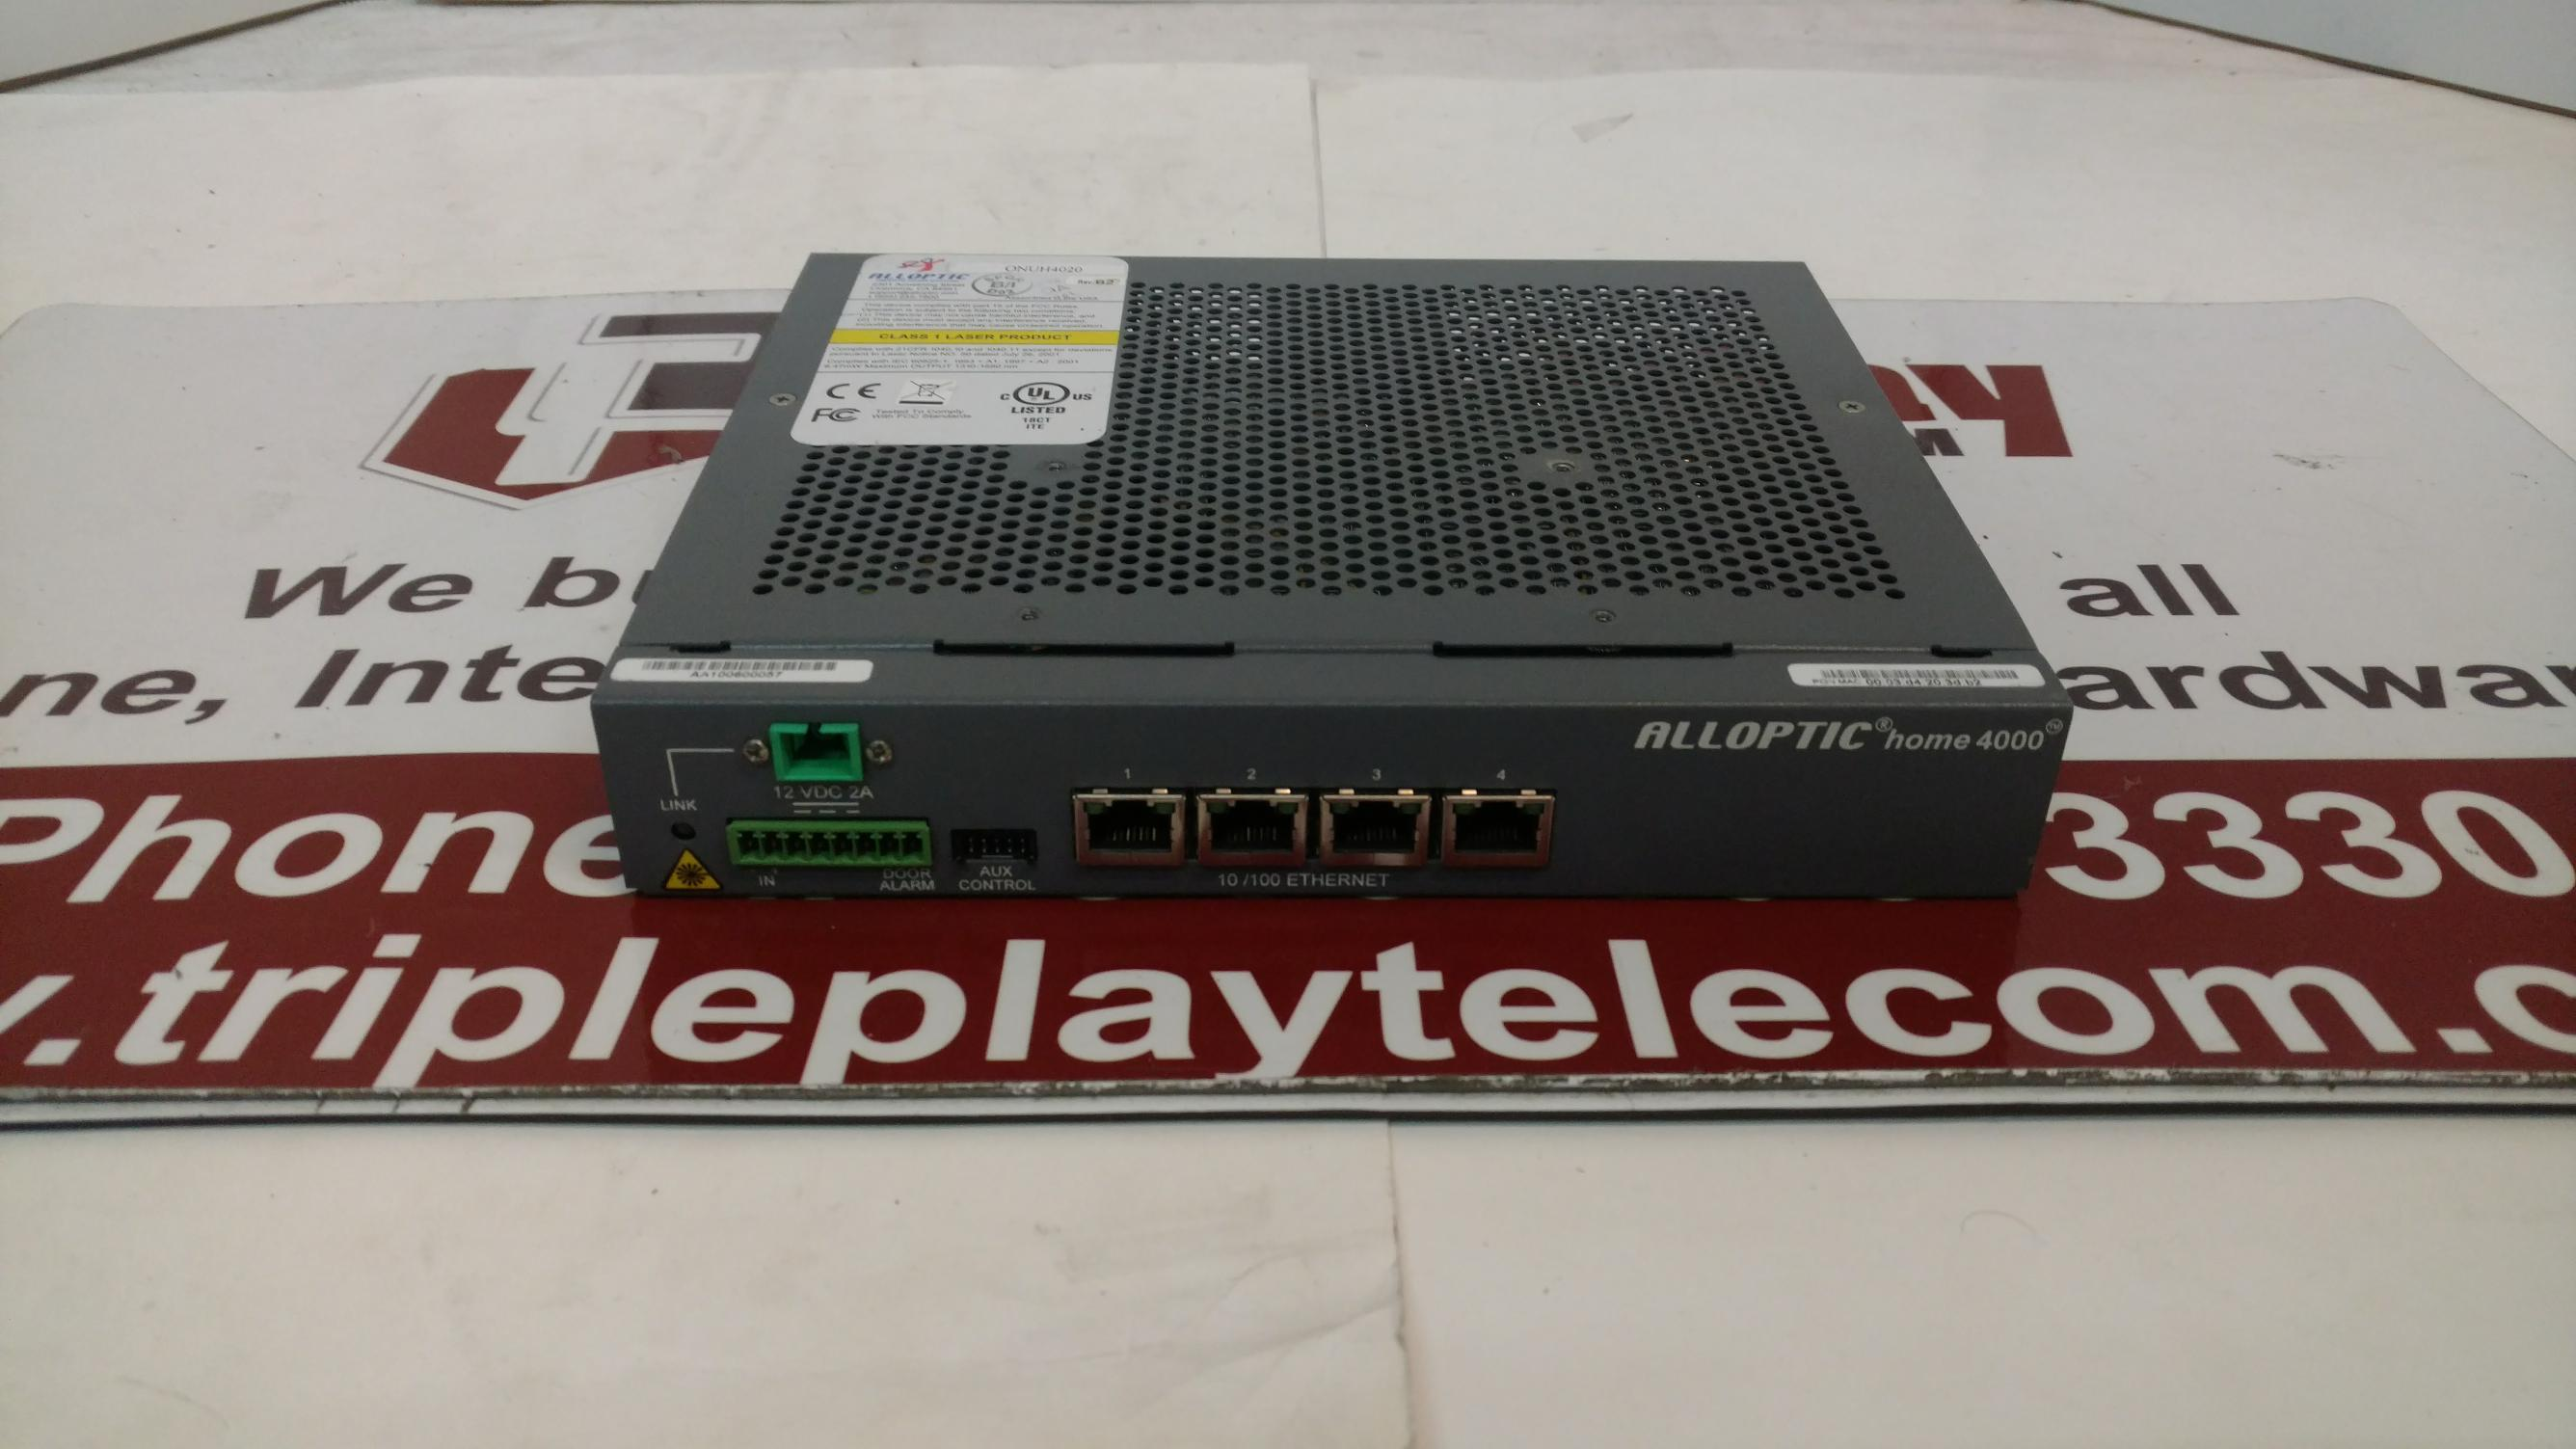 Details about ALLOPTIC Home 4000 4 ETHERNET, ONT P/N-ONUH4020